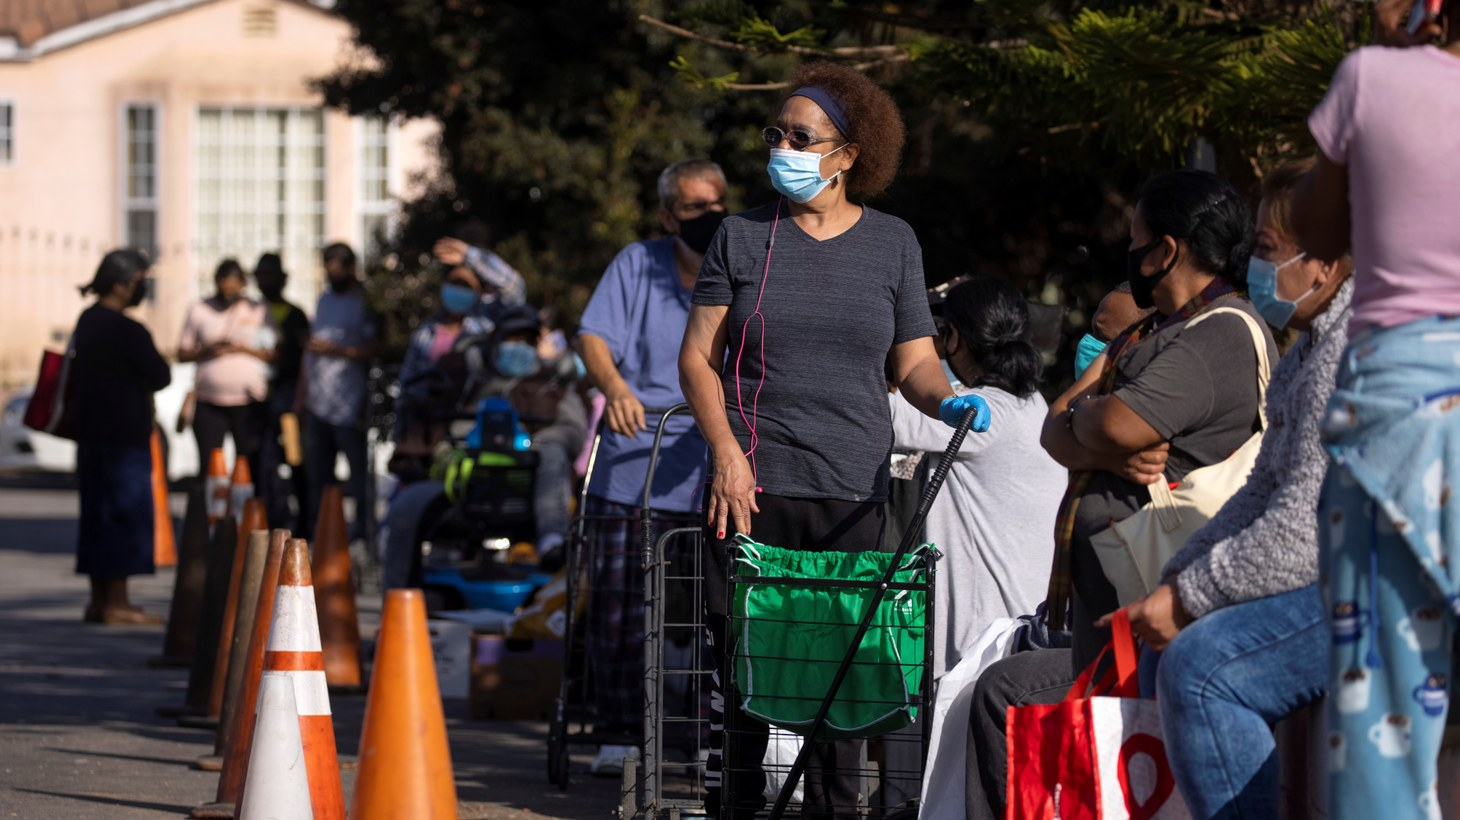 People wait in line as the Los Angeles Regional Food Bank distributes food outside a church during the outbreak of the coronavirus disease (COVID-19) in Los Angeles, California, U.S., November 19, 2020.